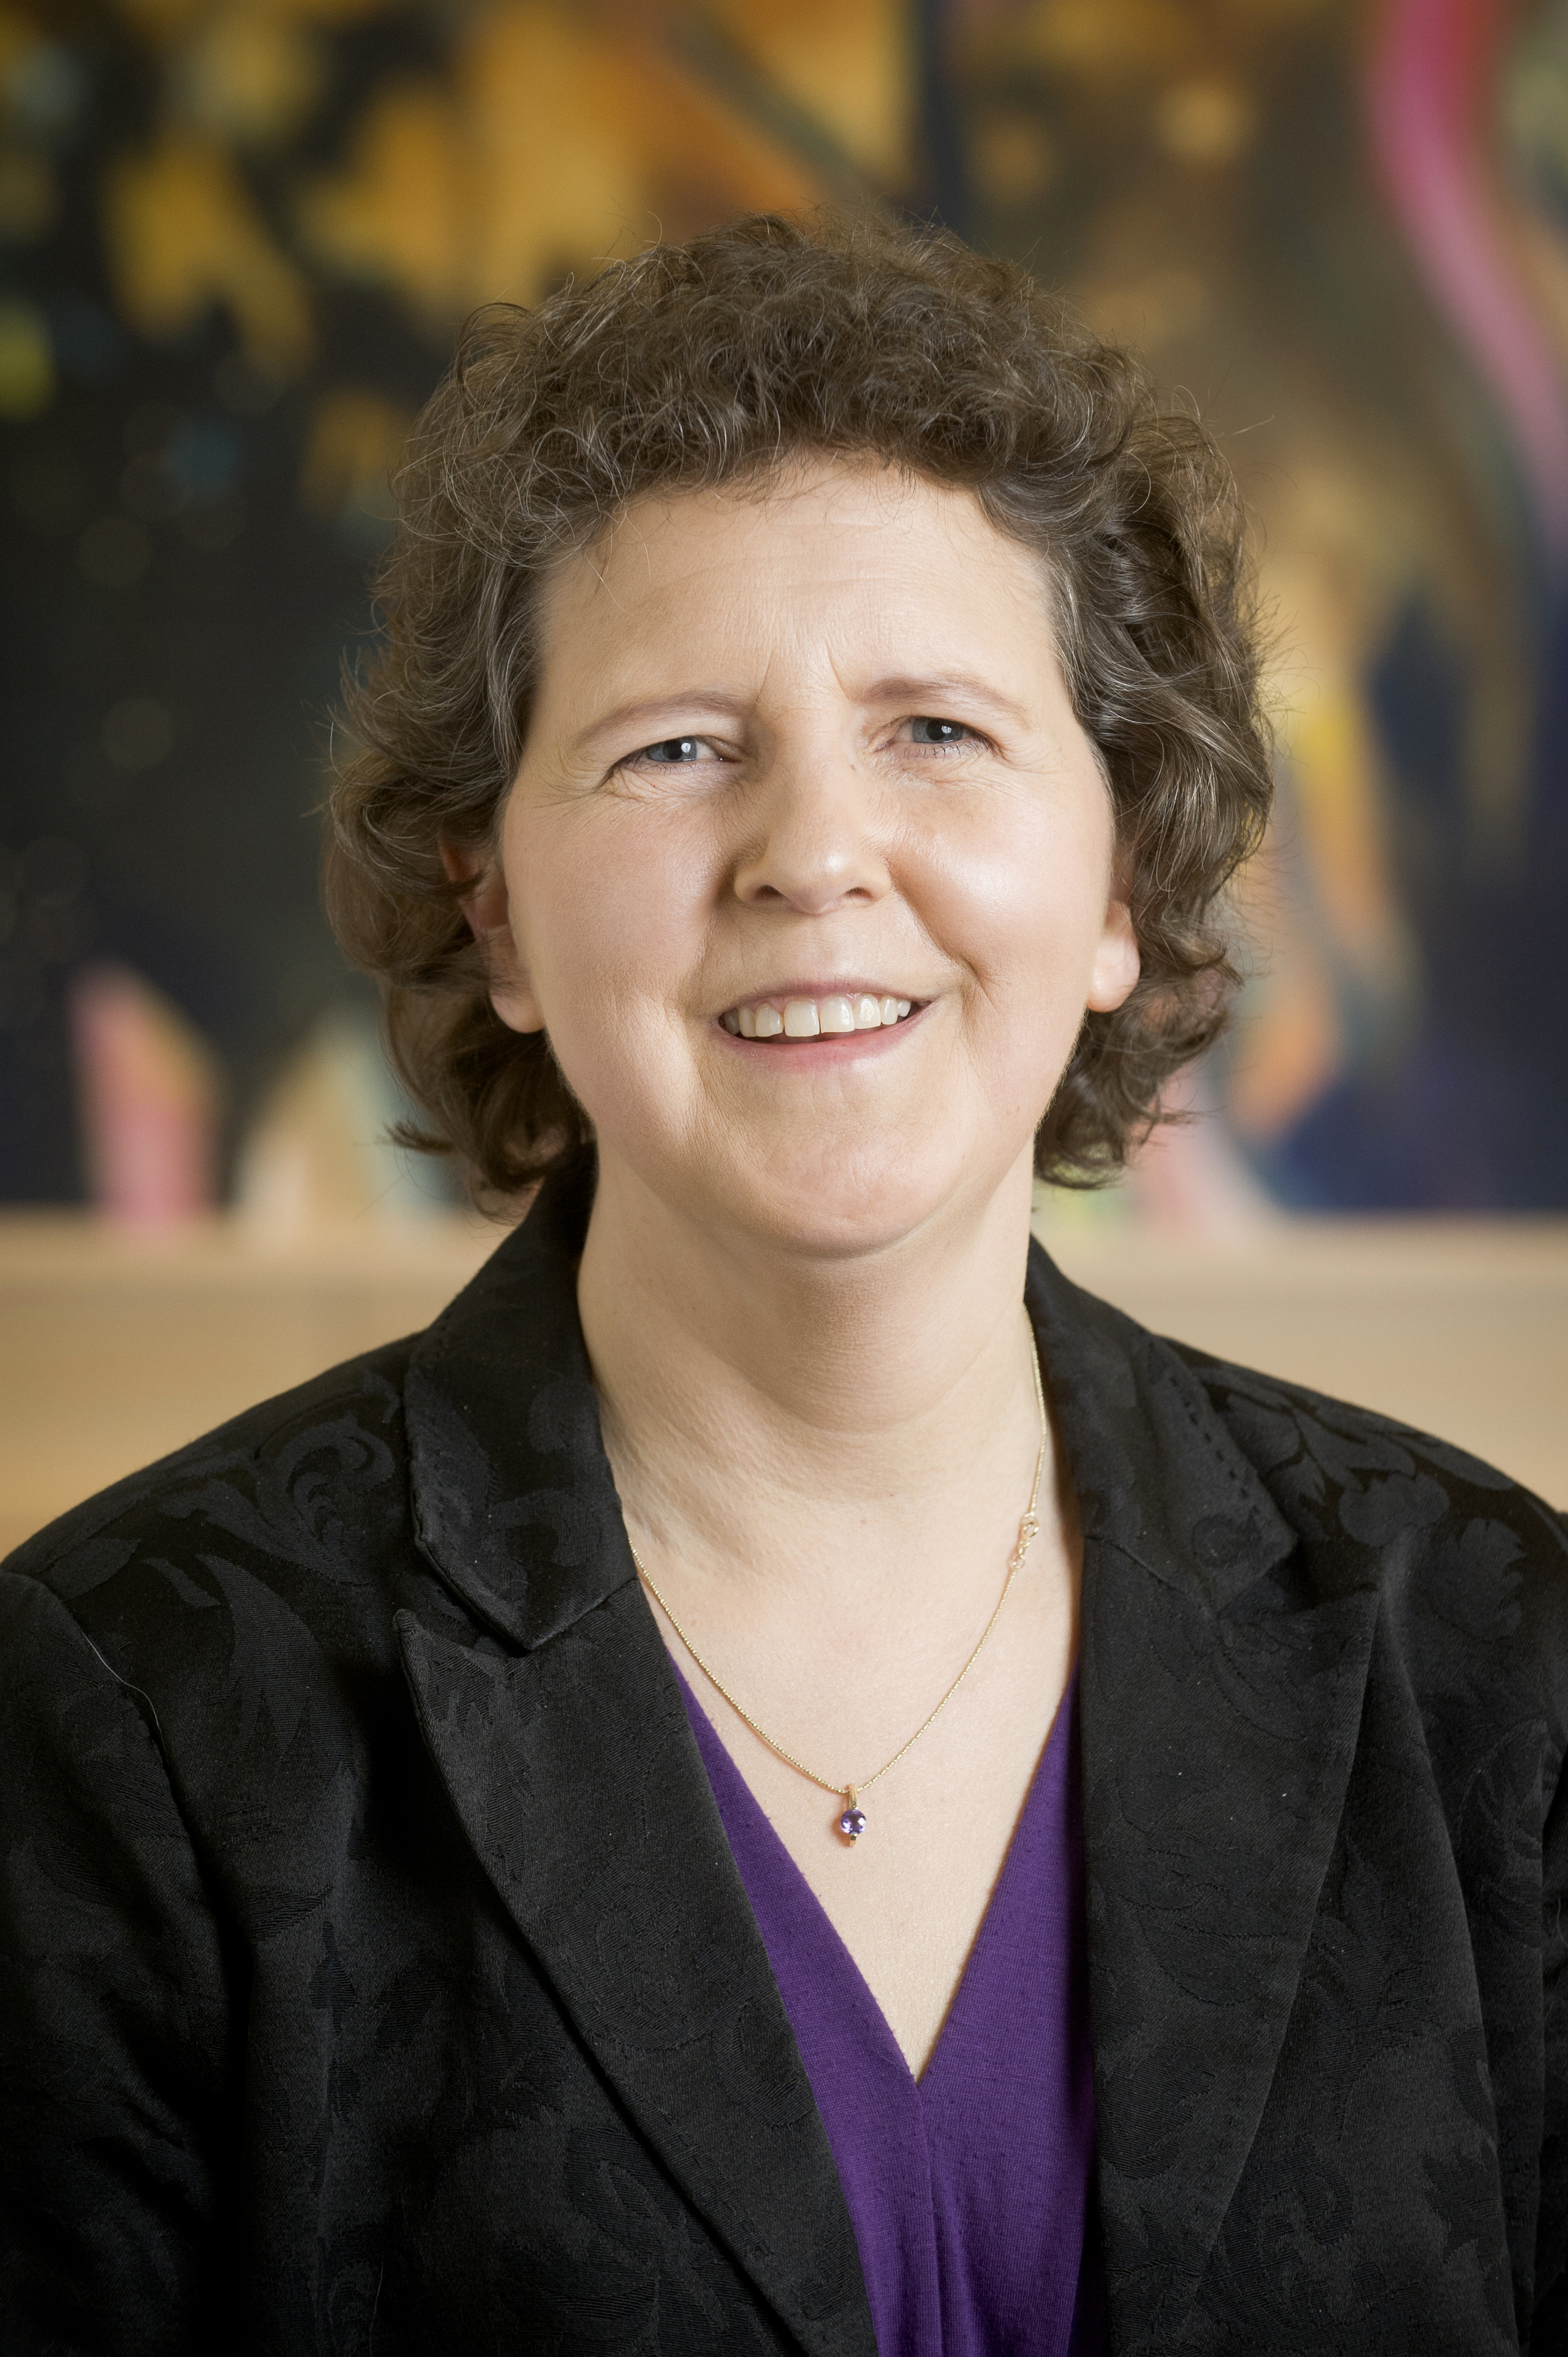 image of Dr. Kathy Magnusson